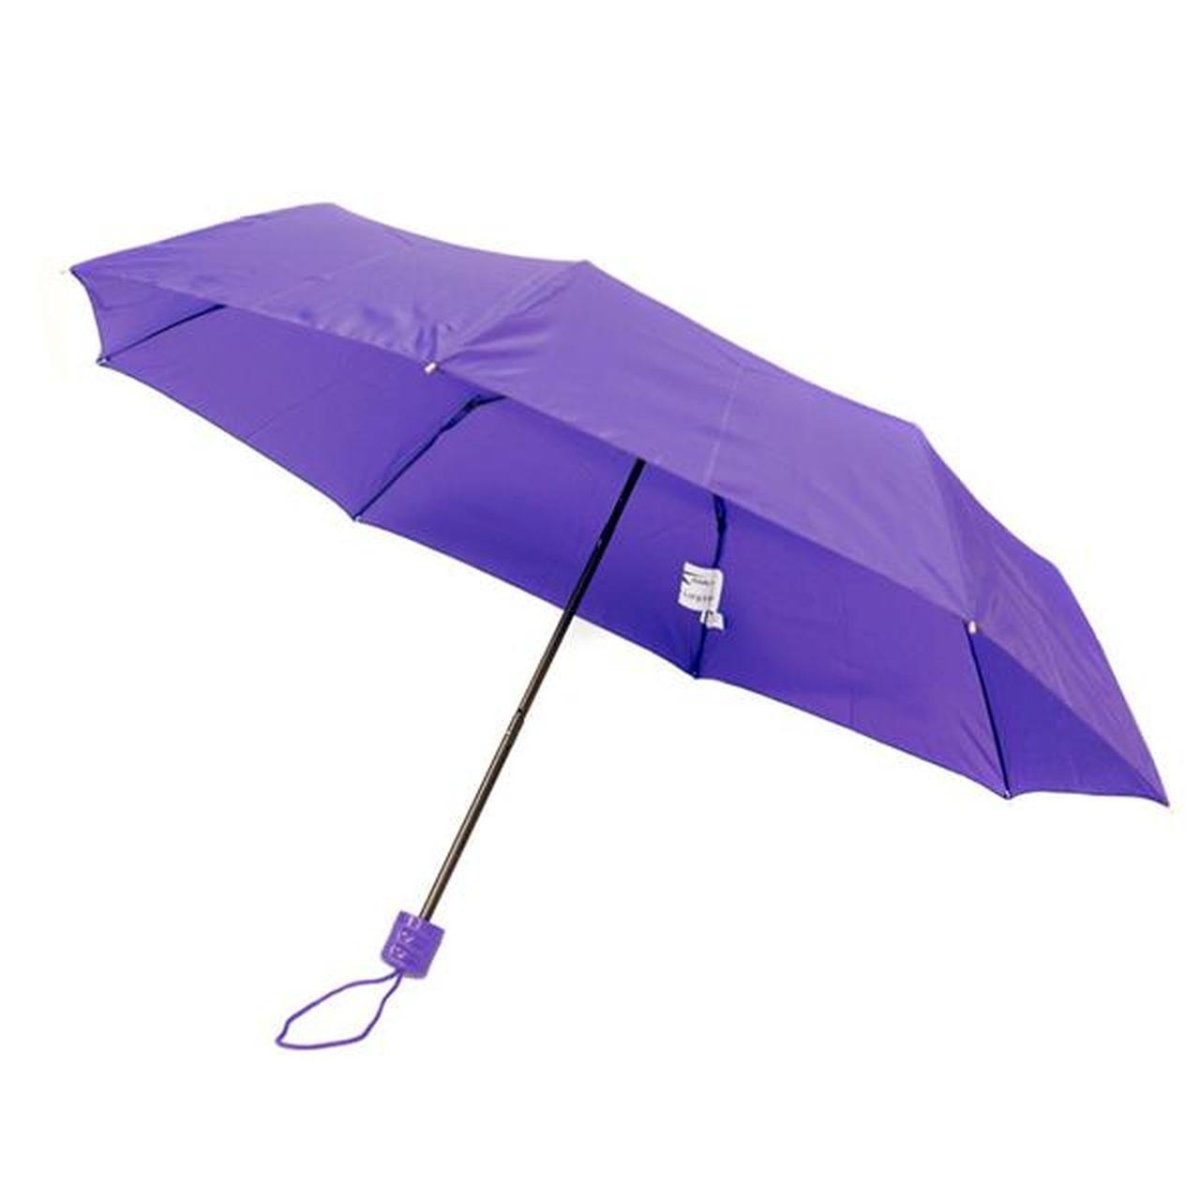 Super Pocket Mini Umbrella - Mr. Knickerbocker